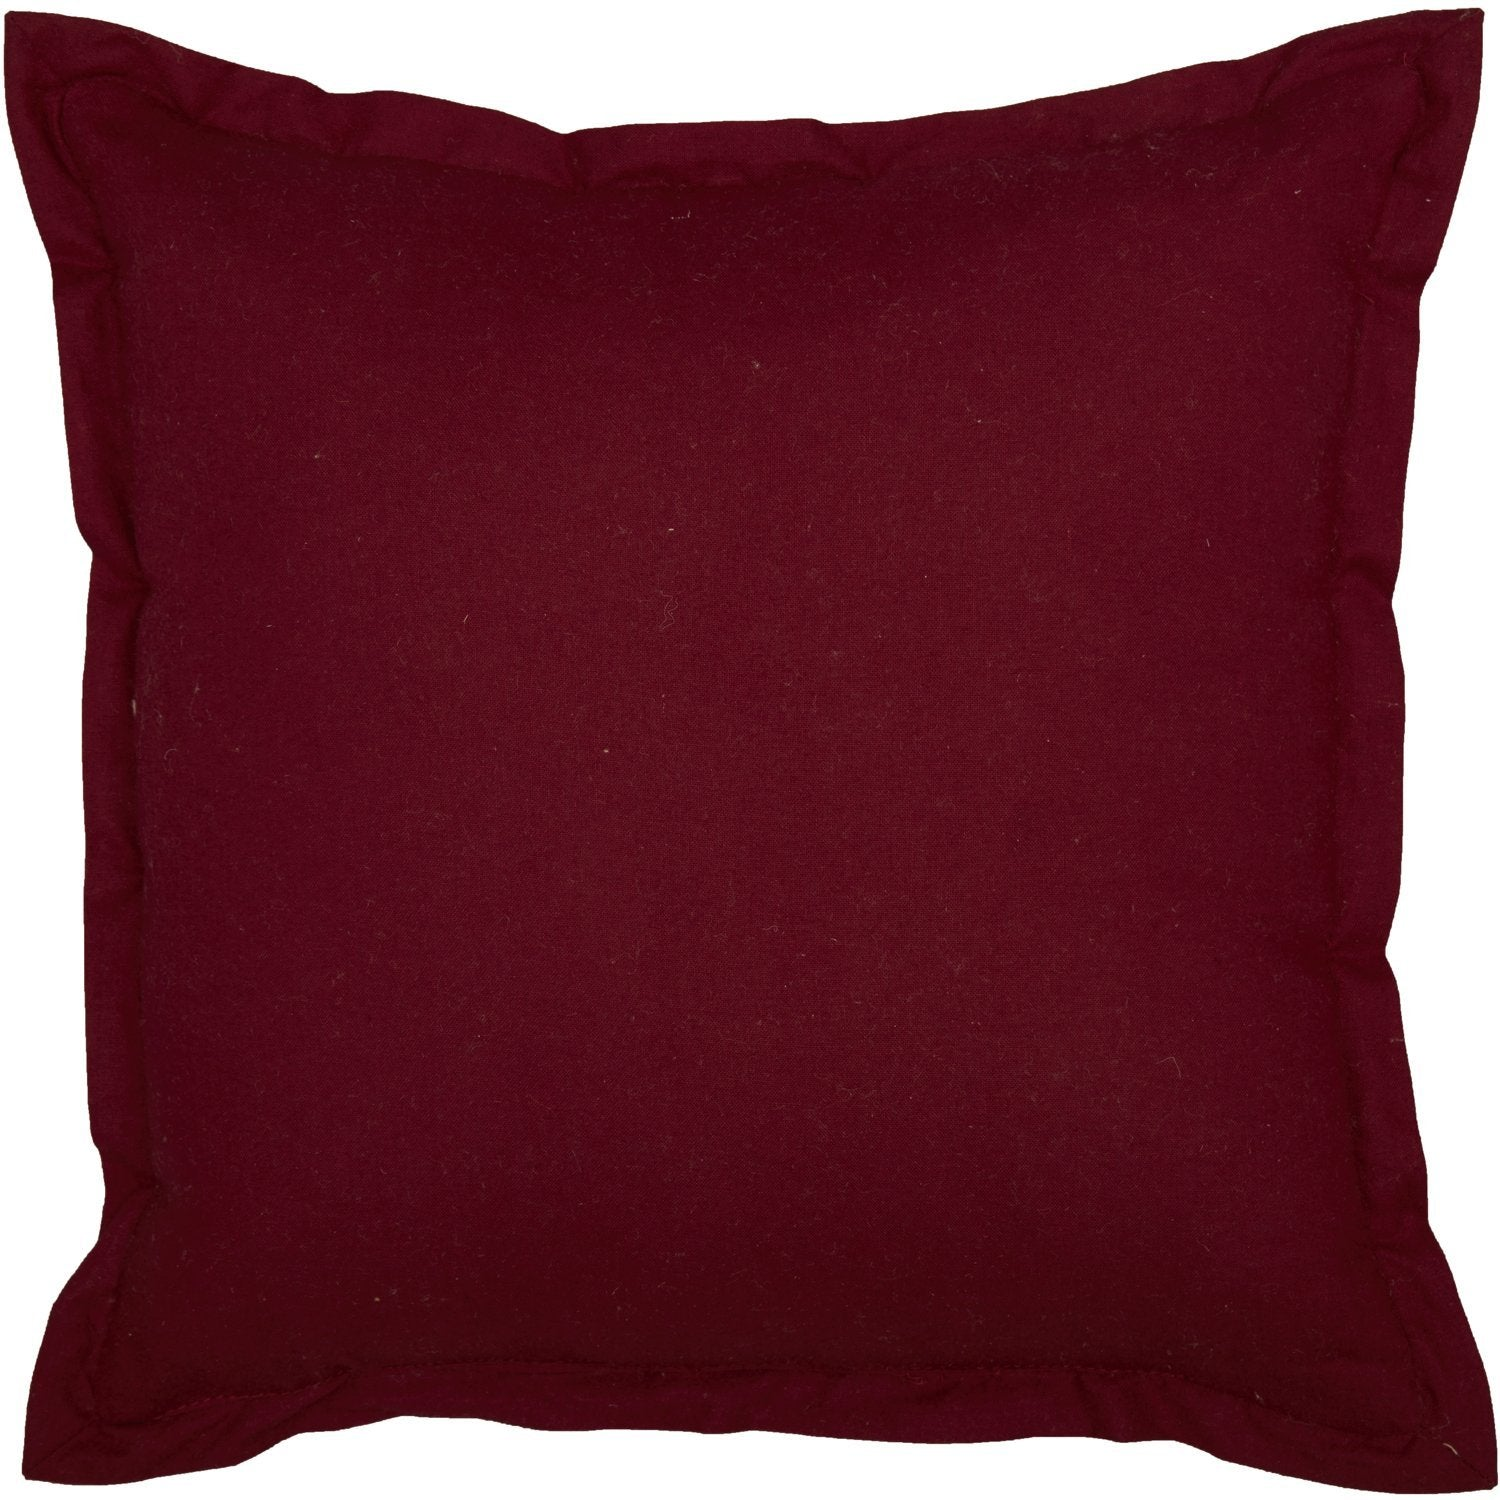 Ninepatch Star Quilted Pillow.